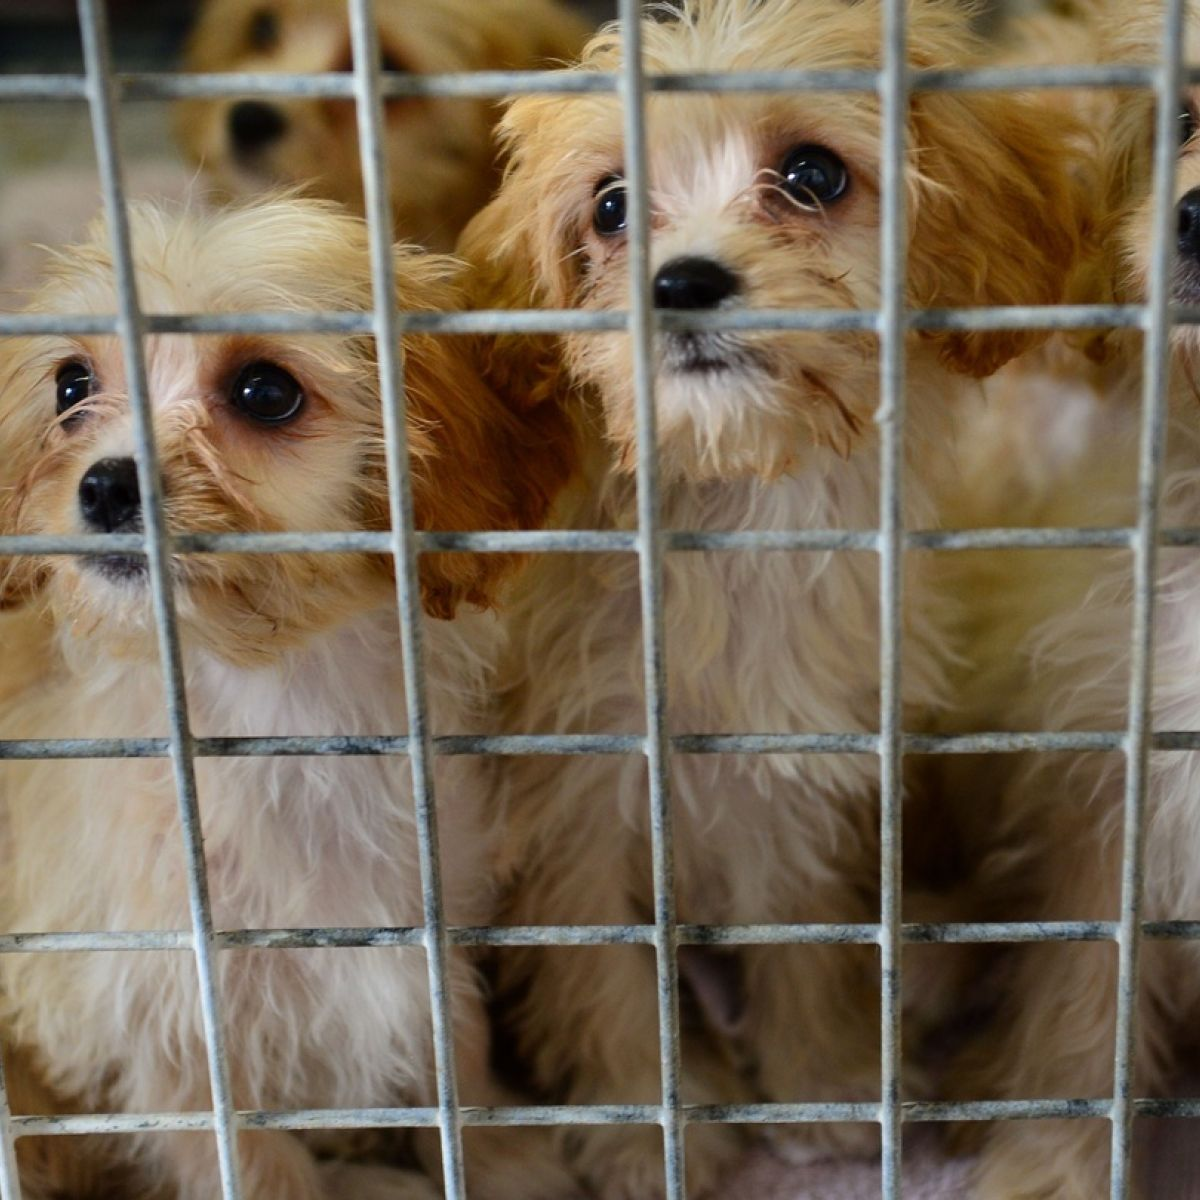 Sad realities of our domestic puppy-farming industry